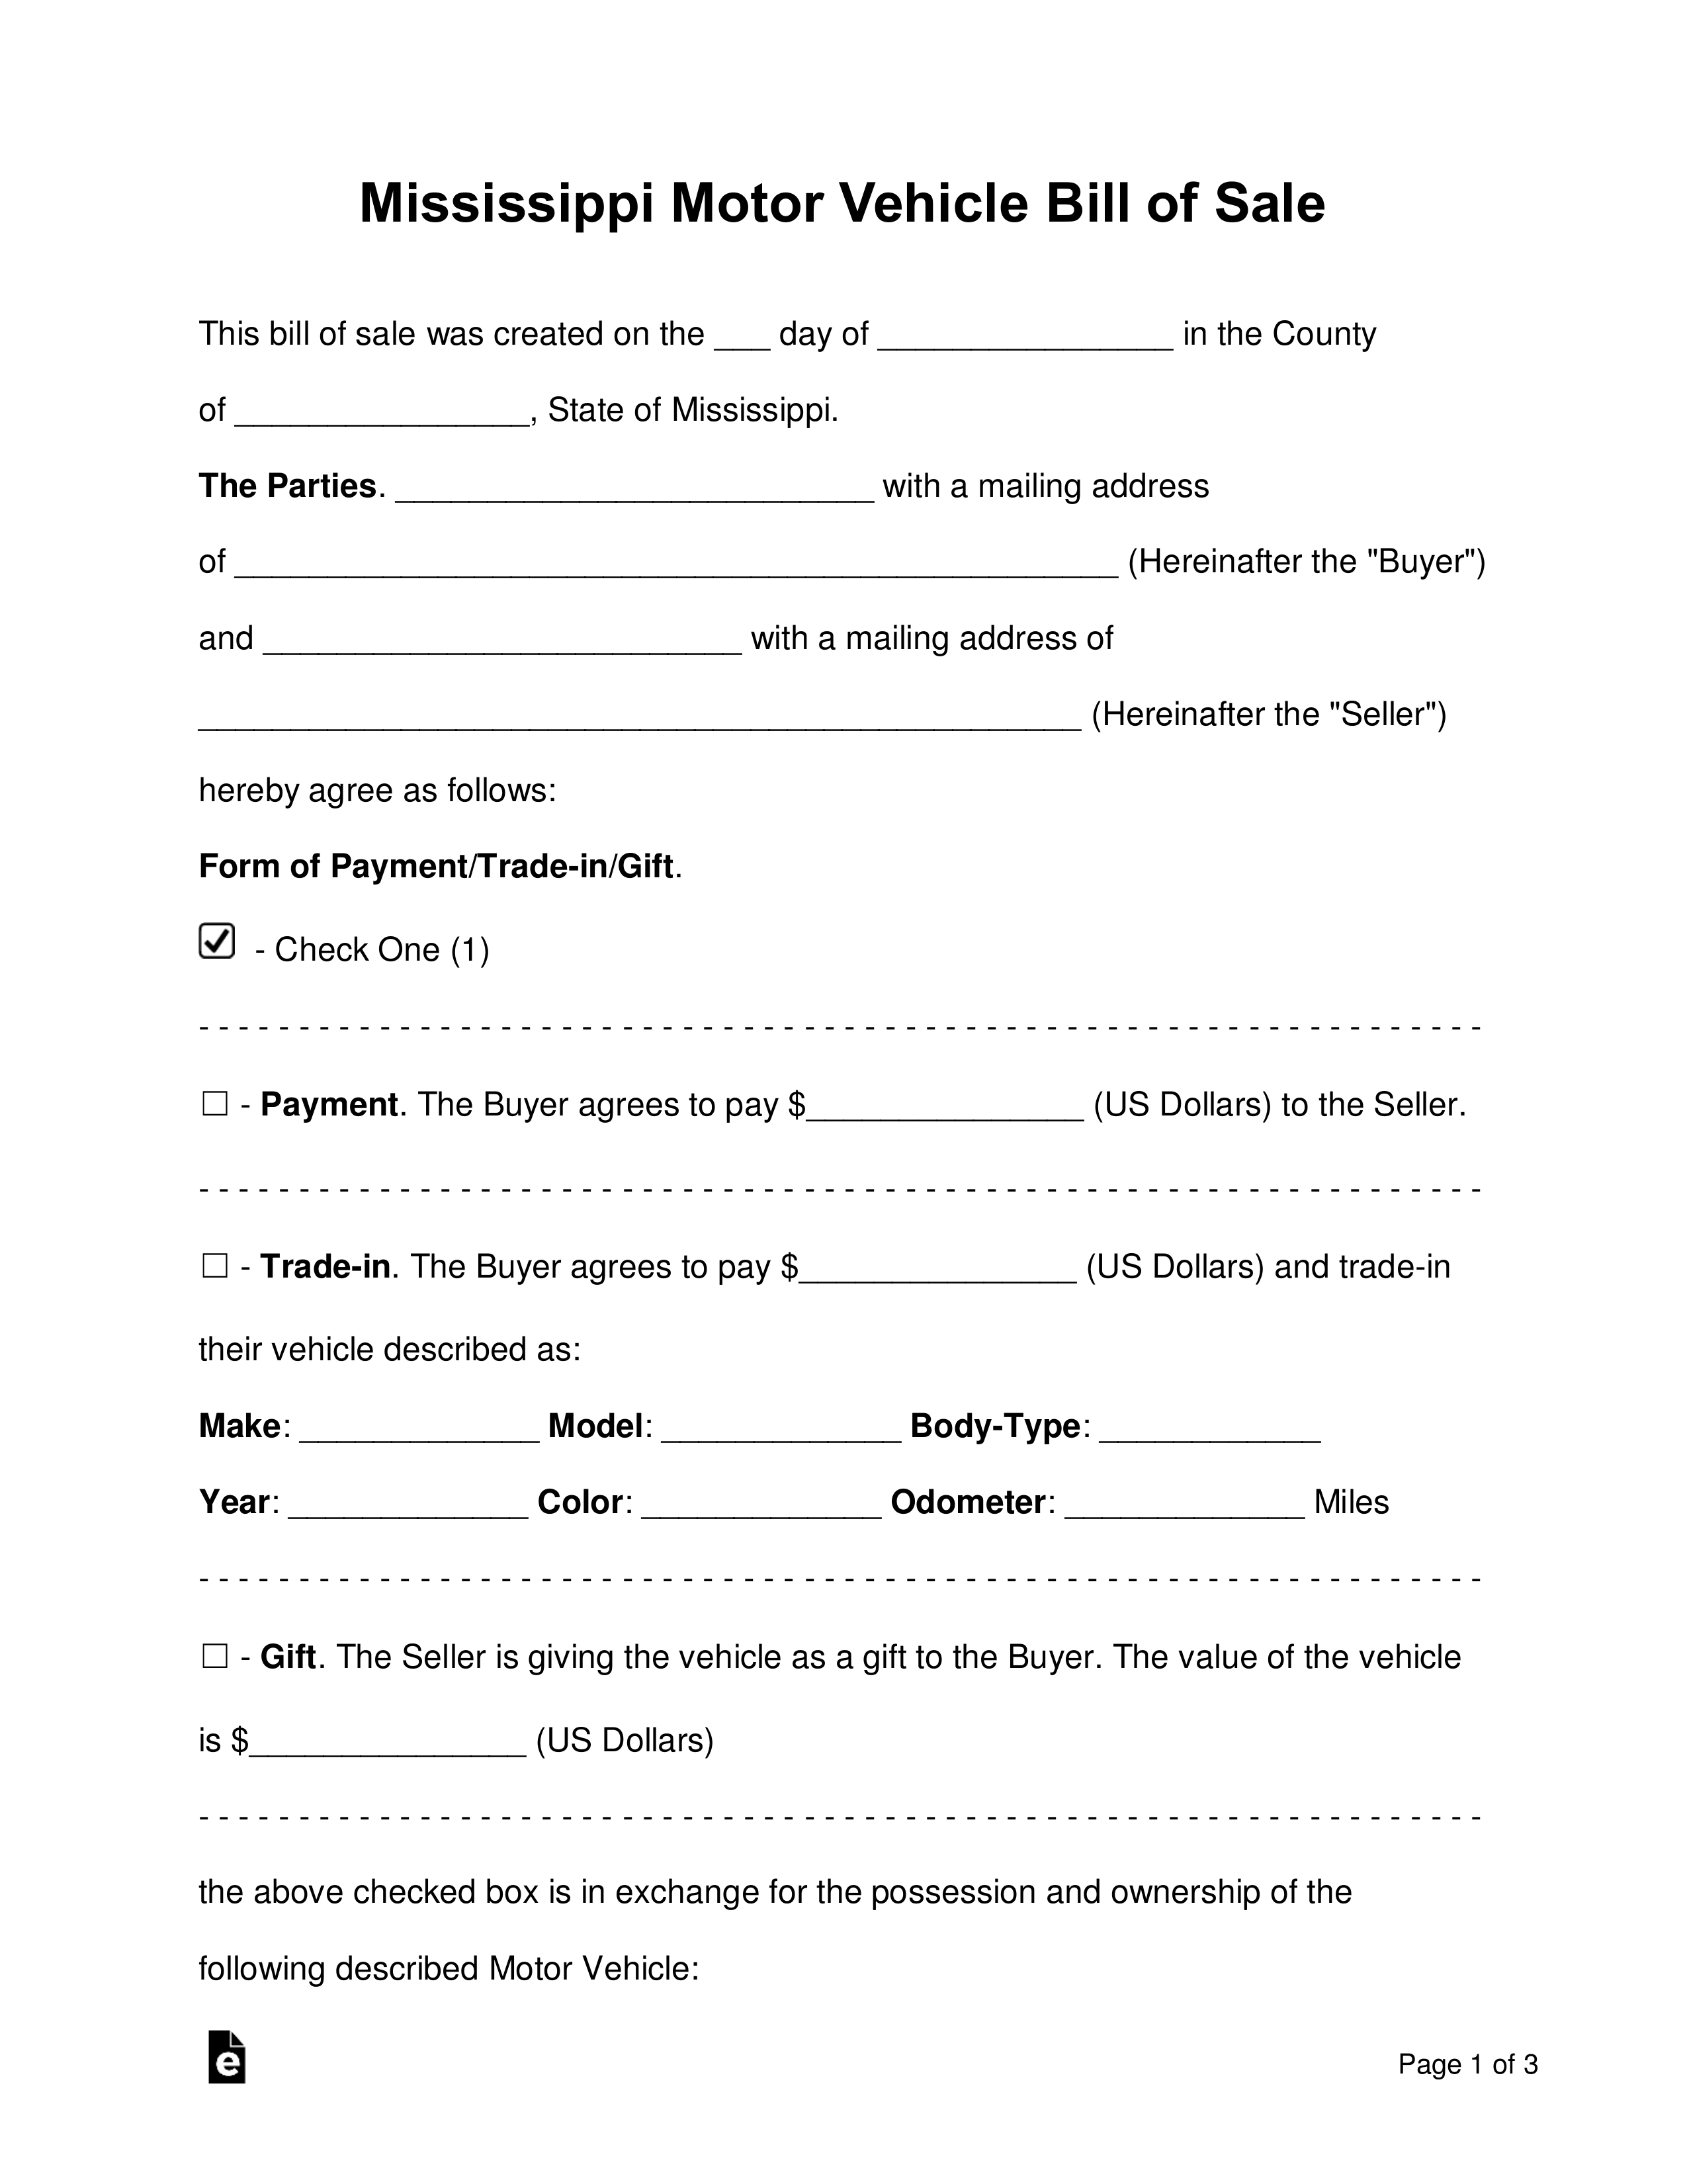 Free Mississippi Motor Vehicle Bill Of Sale Form - Word